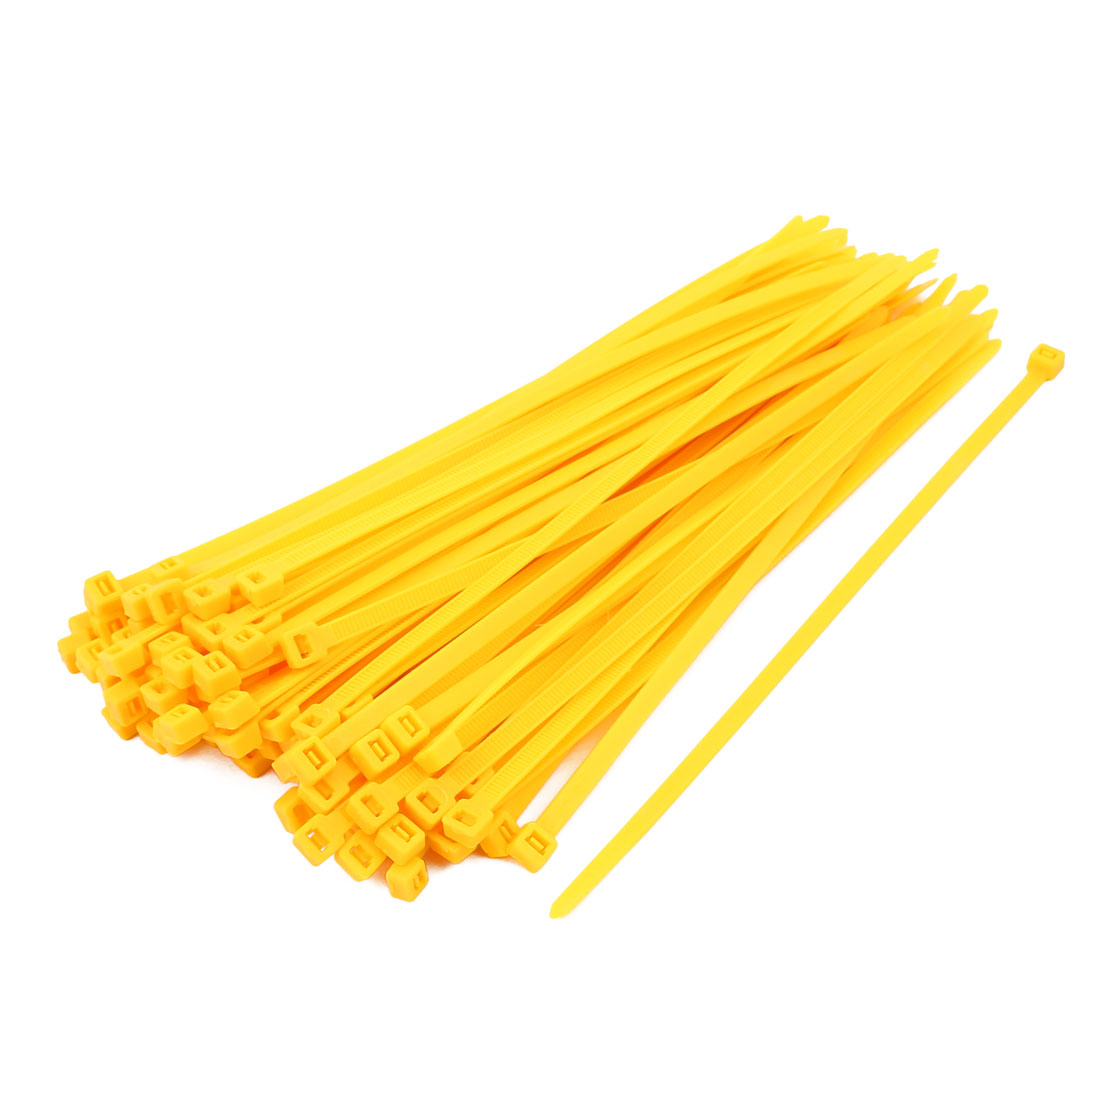 5mm x 200mm Self Locking Nylon Cable Ties Heavy Industrial Wire Zip Ties Yellow 100pcs